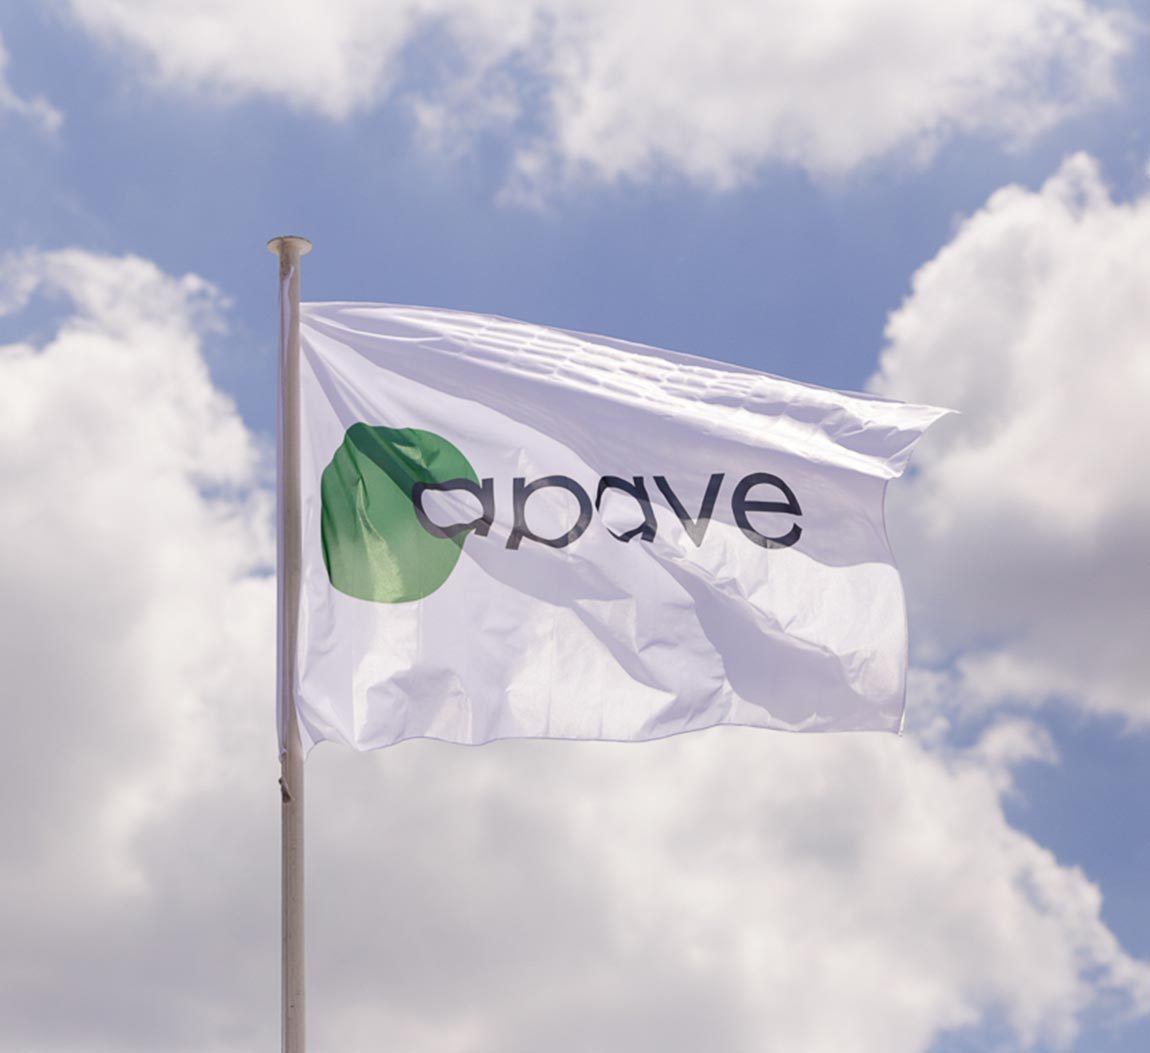 A white flag with the Apave logo